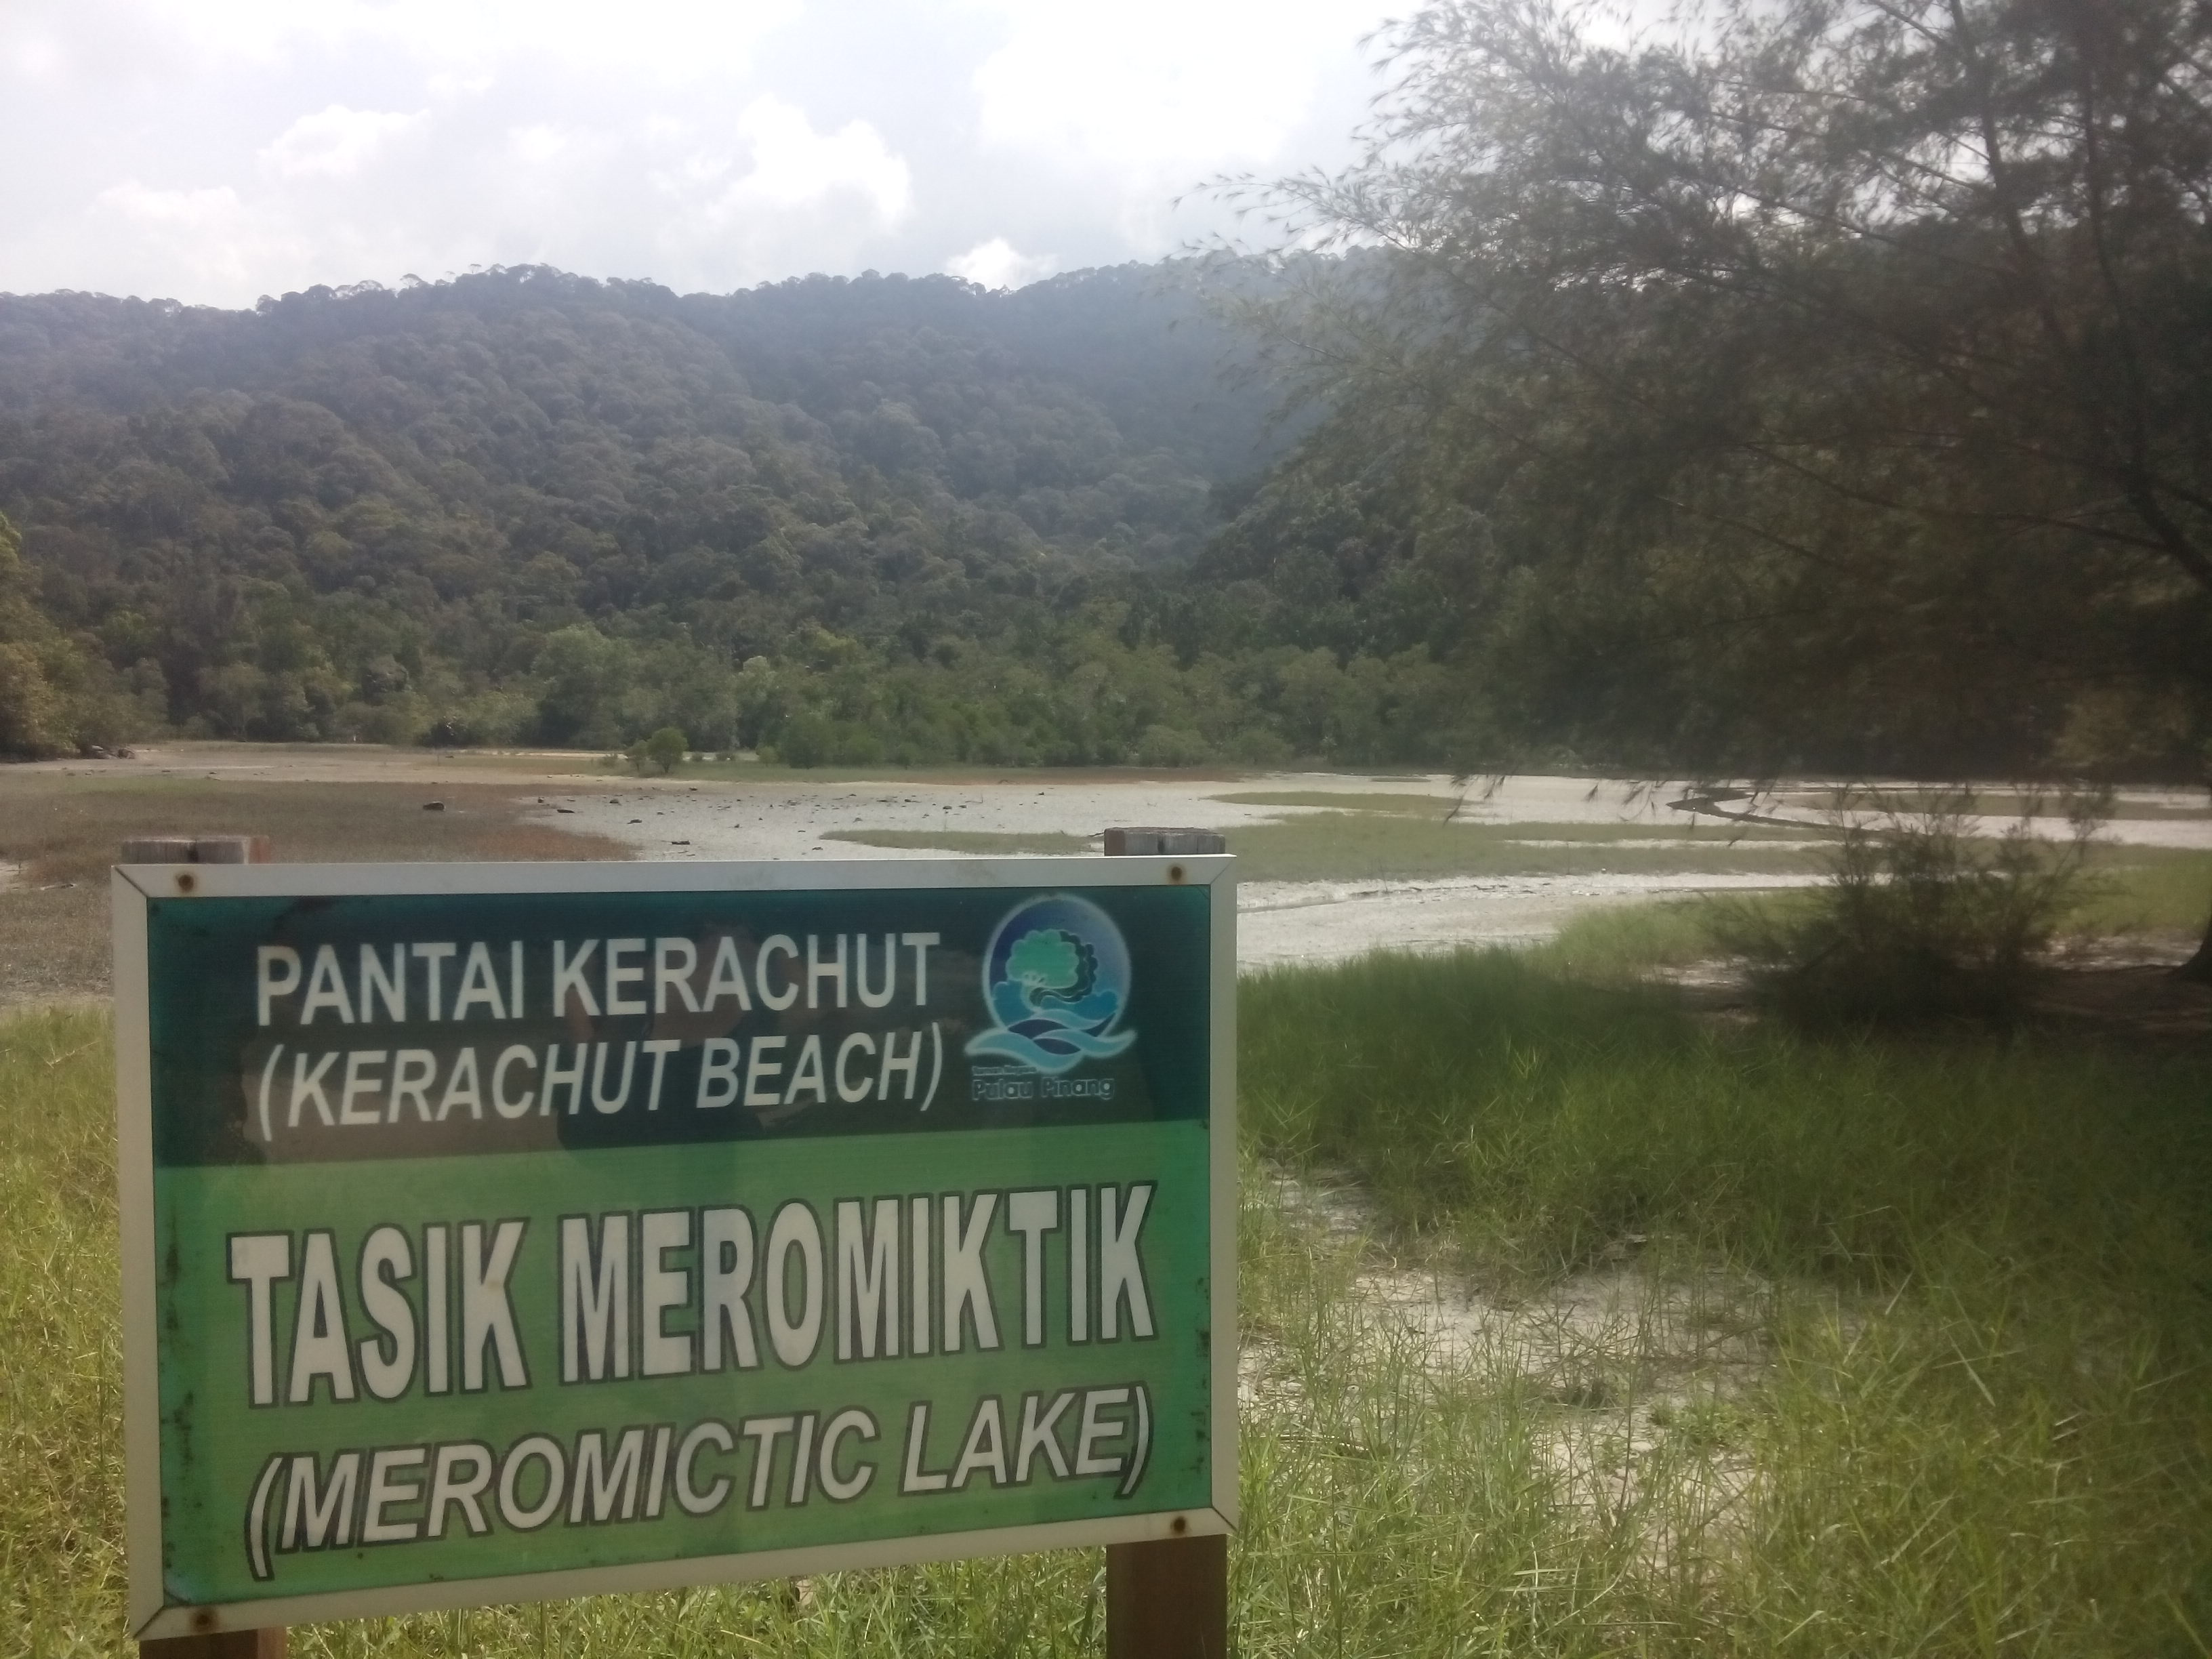 A mostly dry lake, with a sign reading 'Tasik Meromitik'